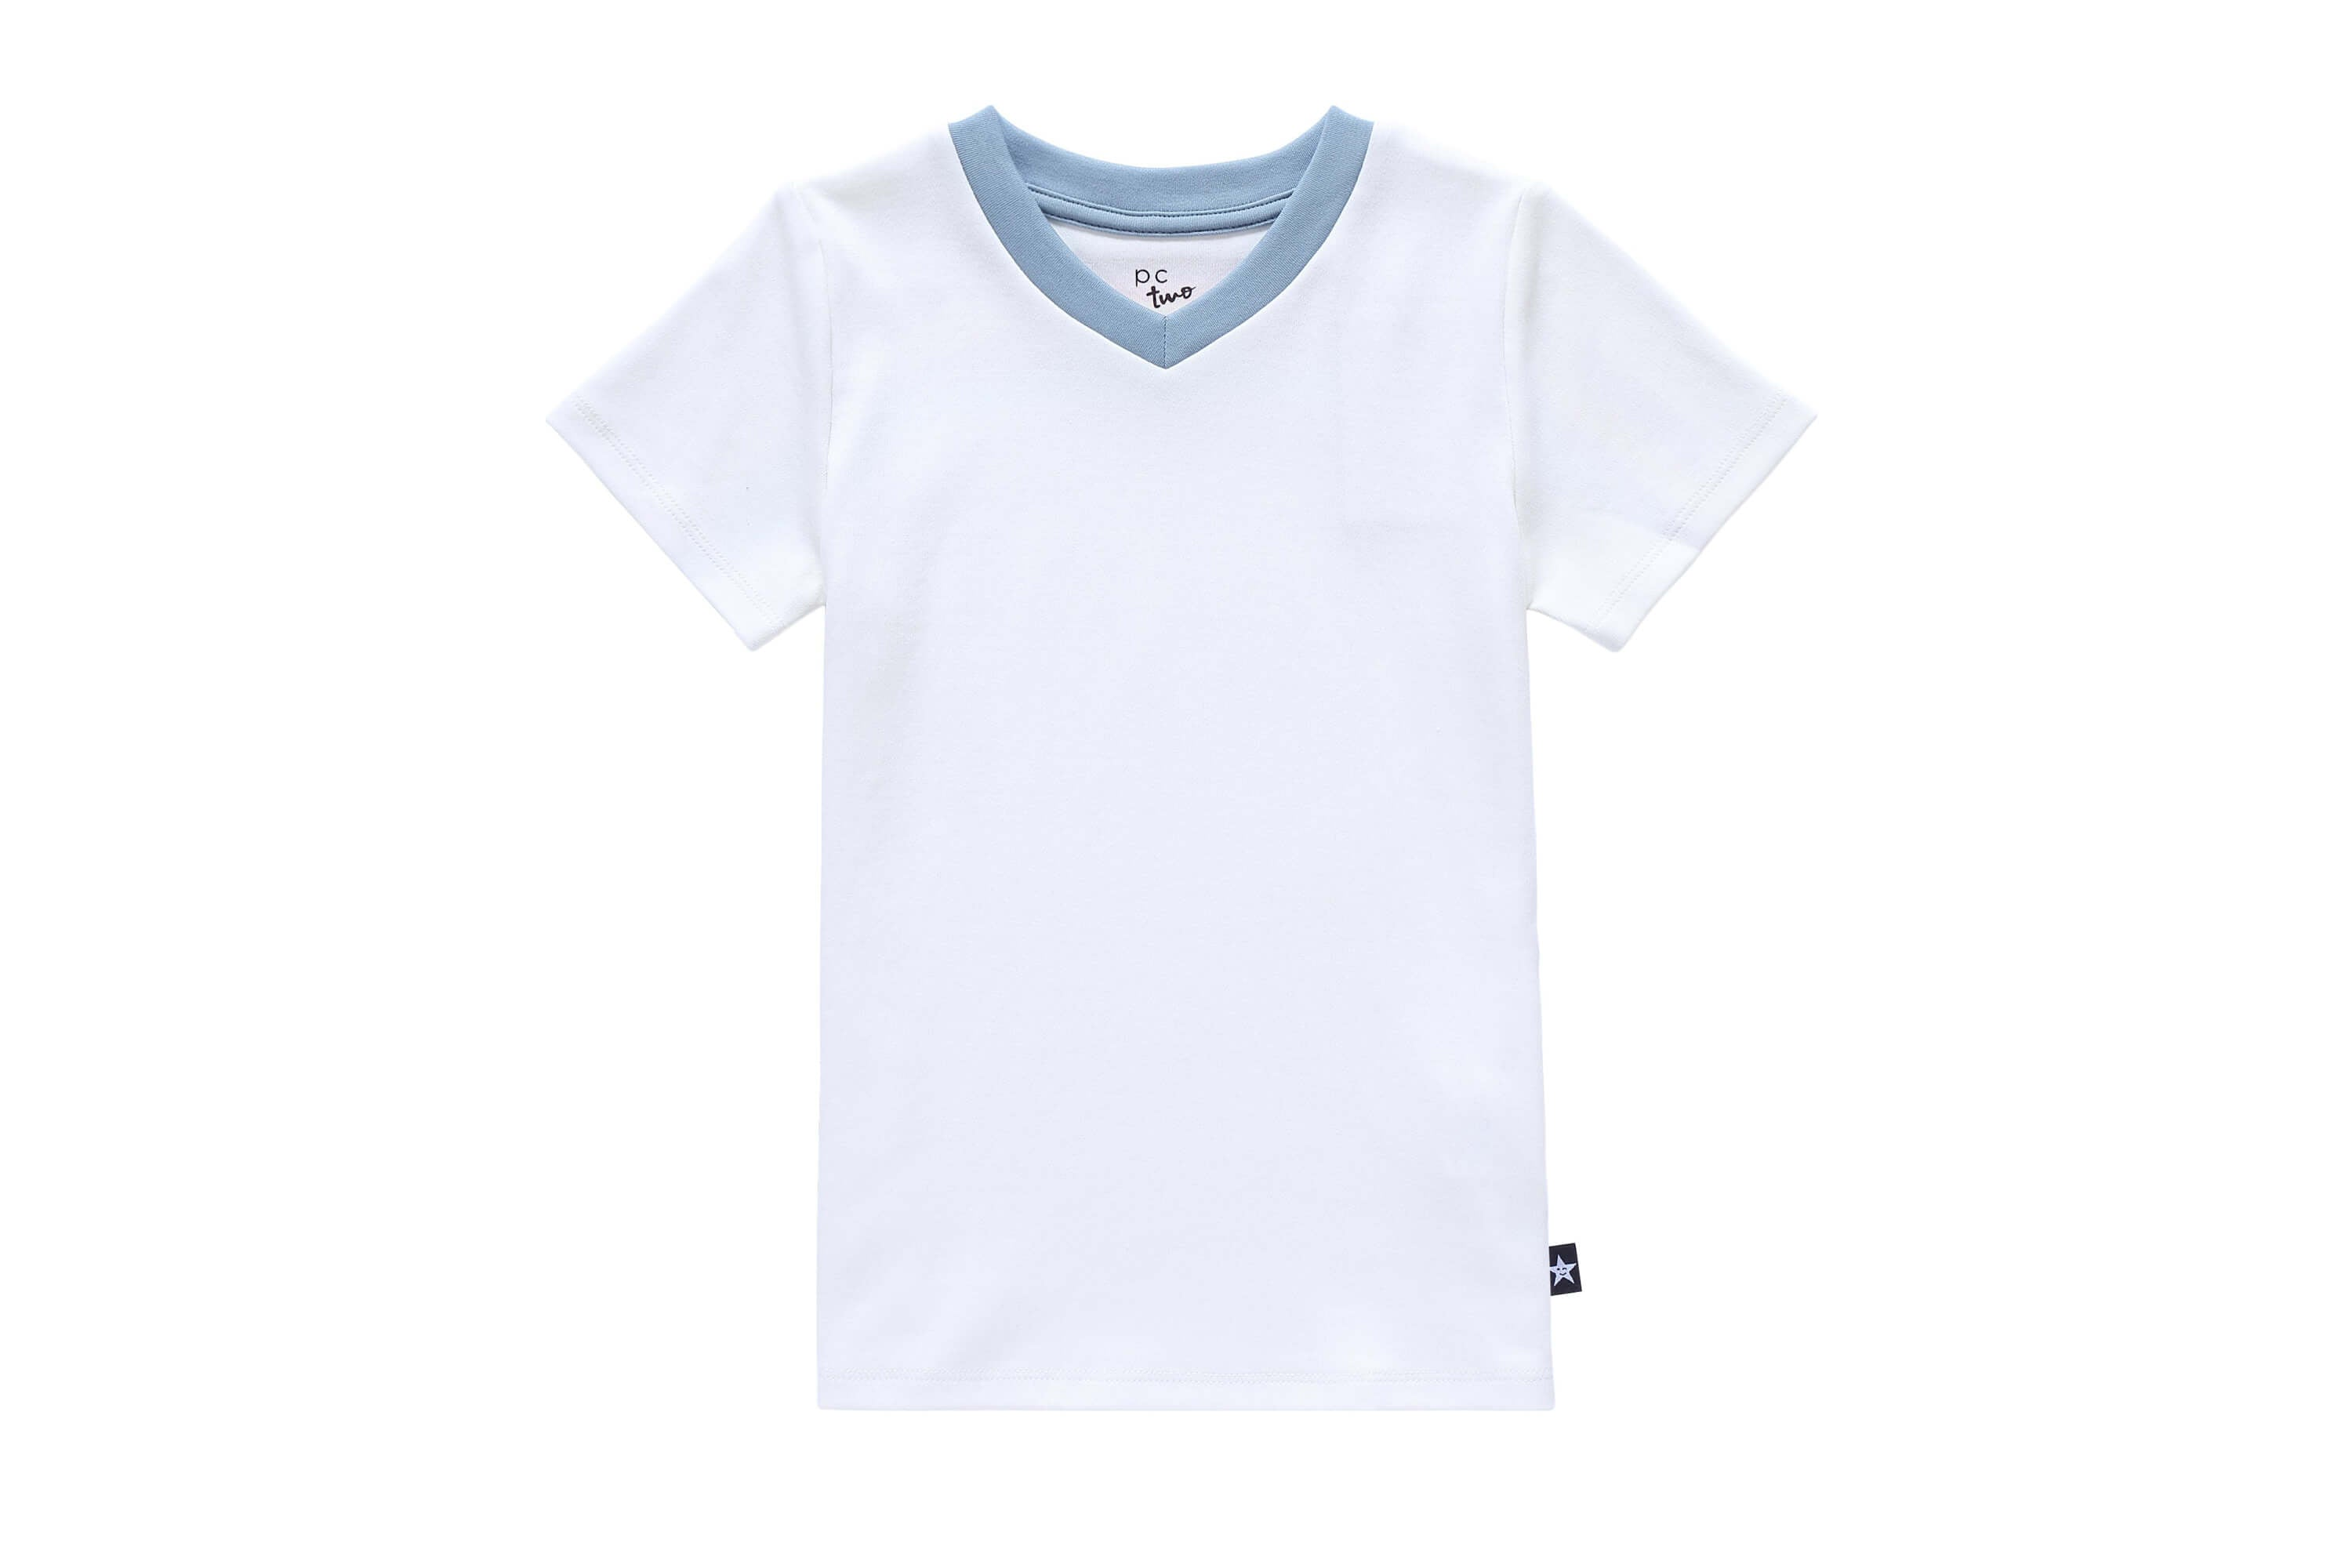 6dc158121 Boys' V-neck Rainbow T-shirt - Petit Clair